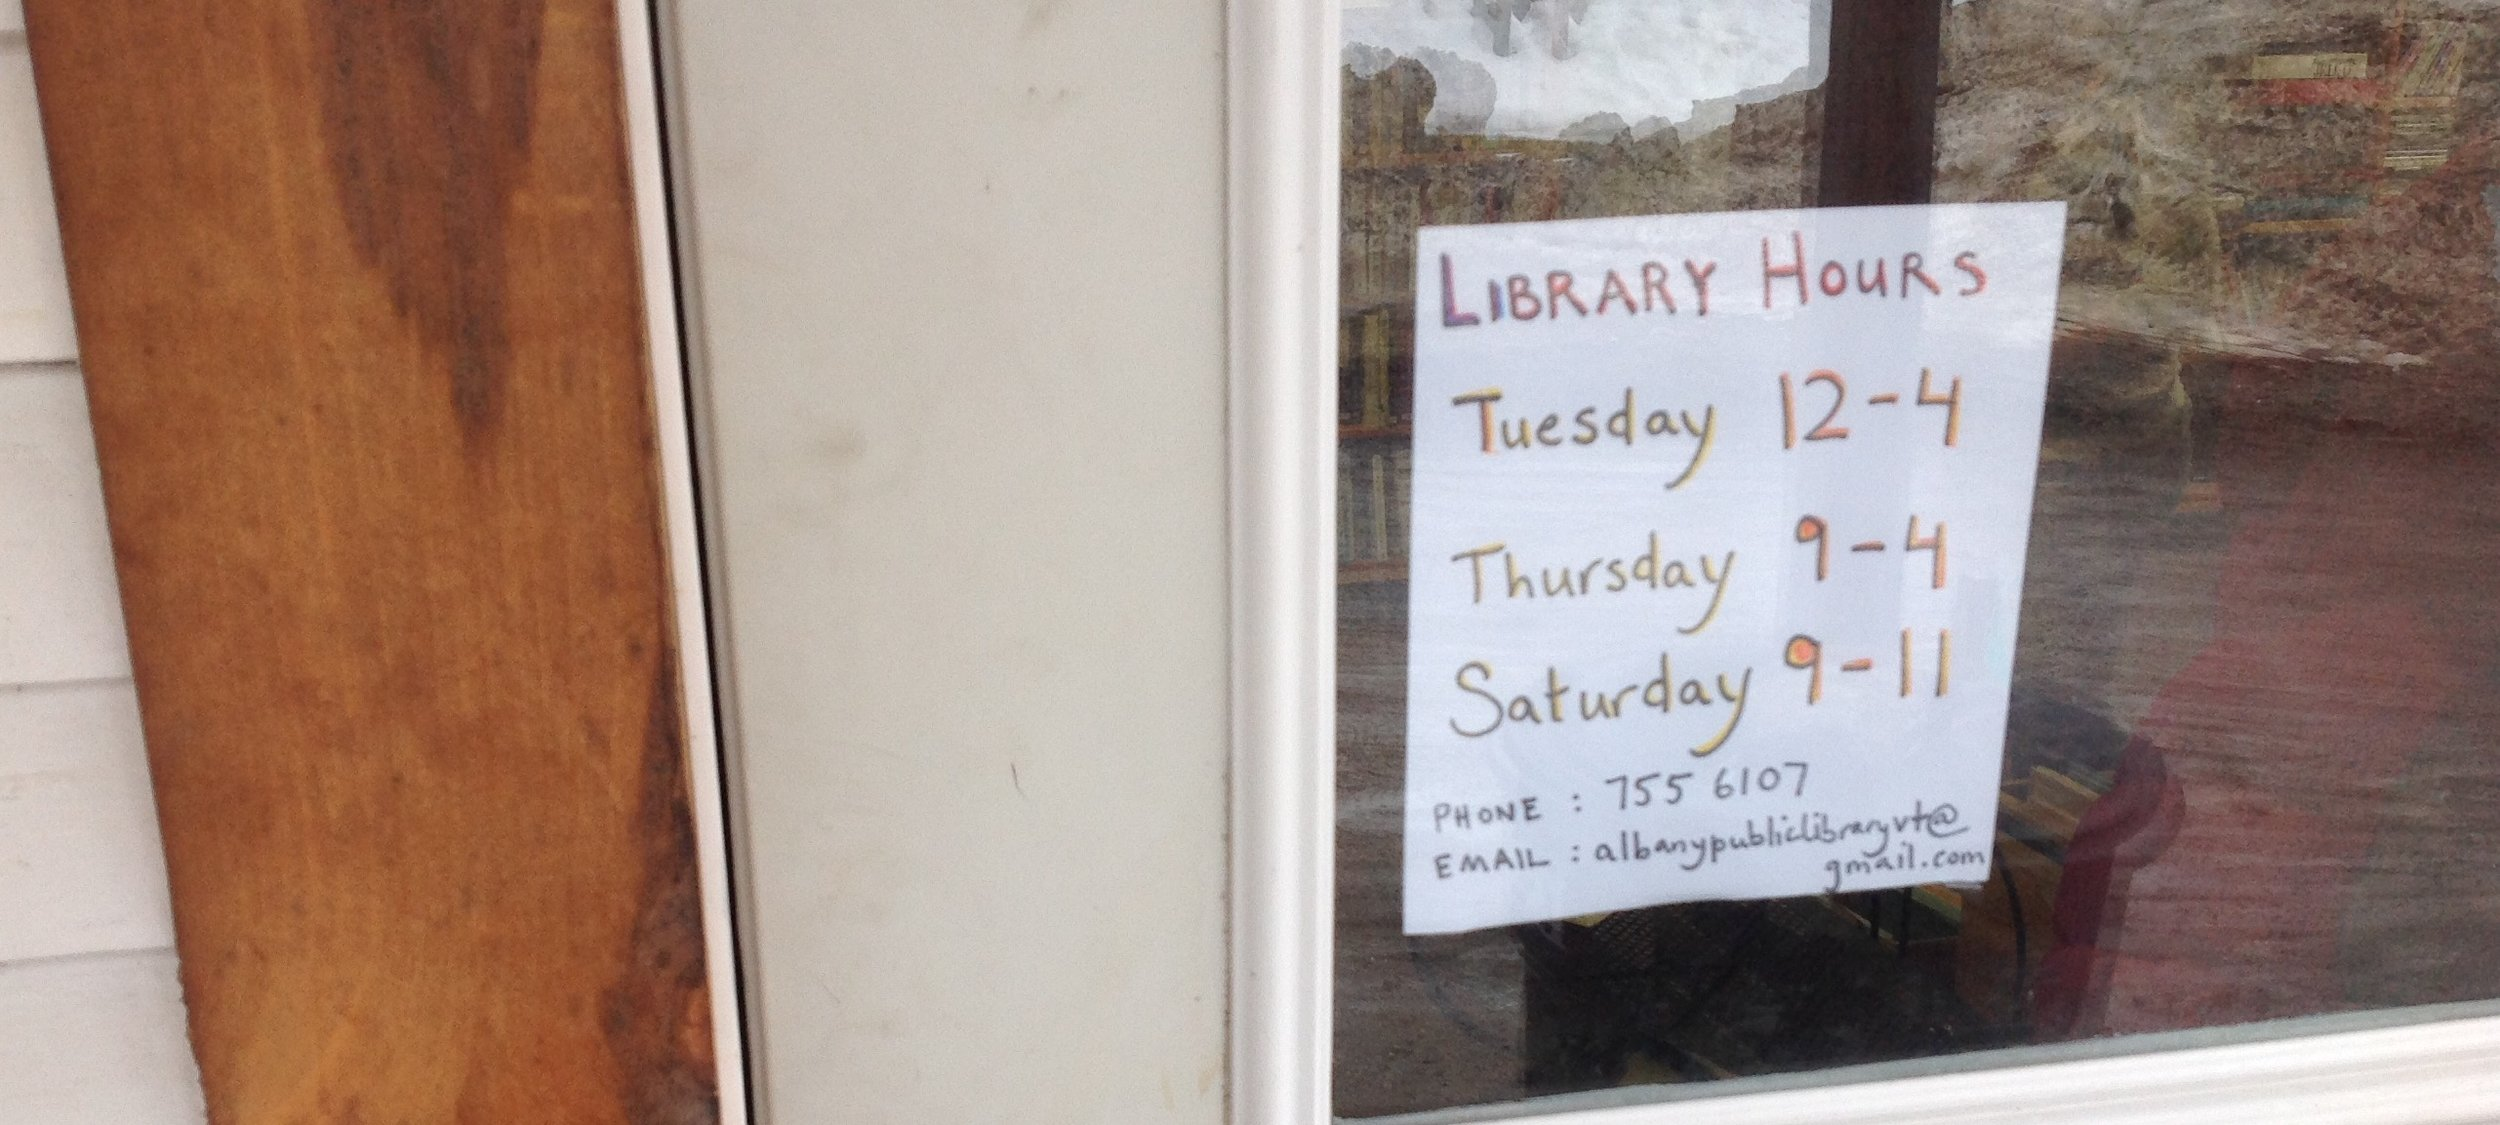 Library Hours: Tues 12-4, Thurs 9-4, Sat 9-11, StoryHour: Thurs 9-11.